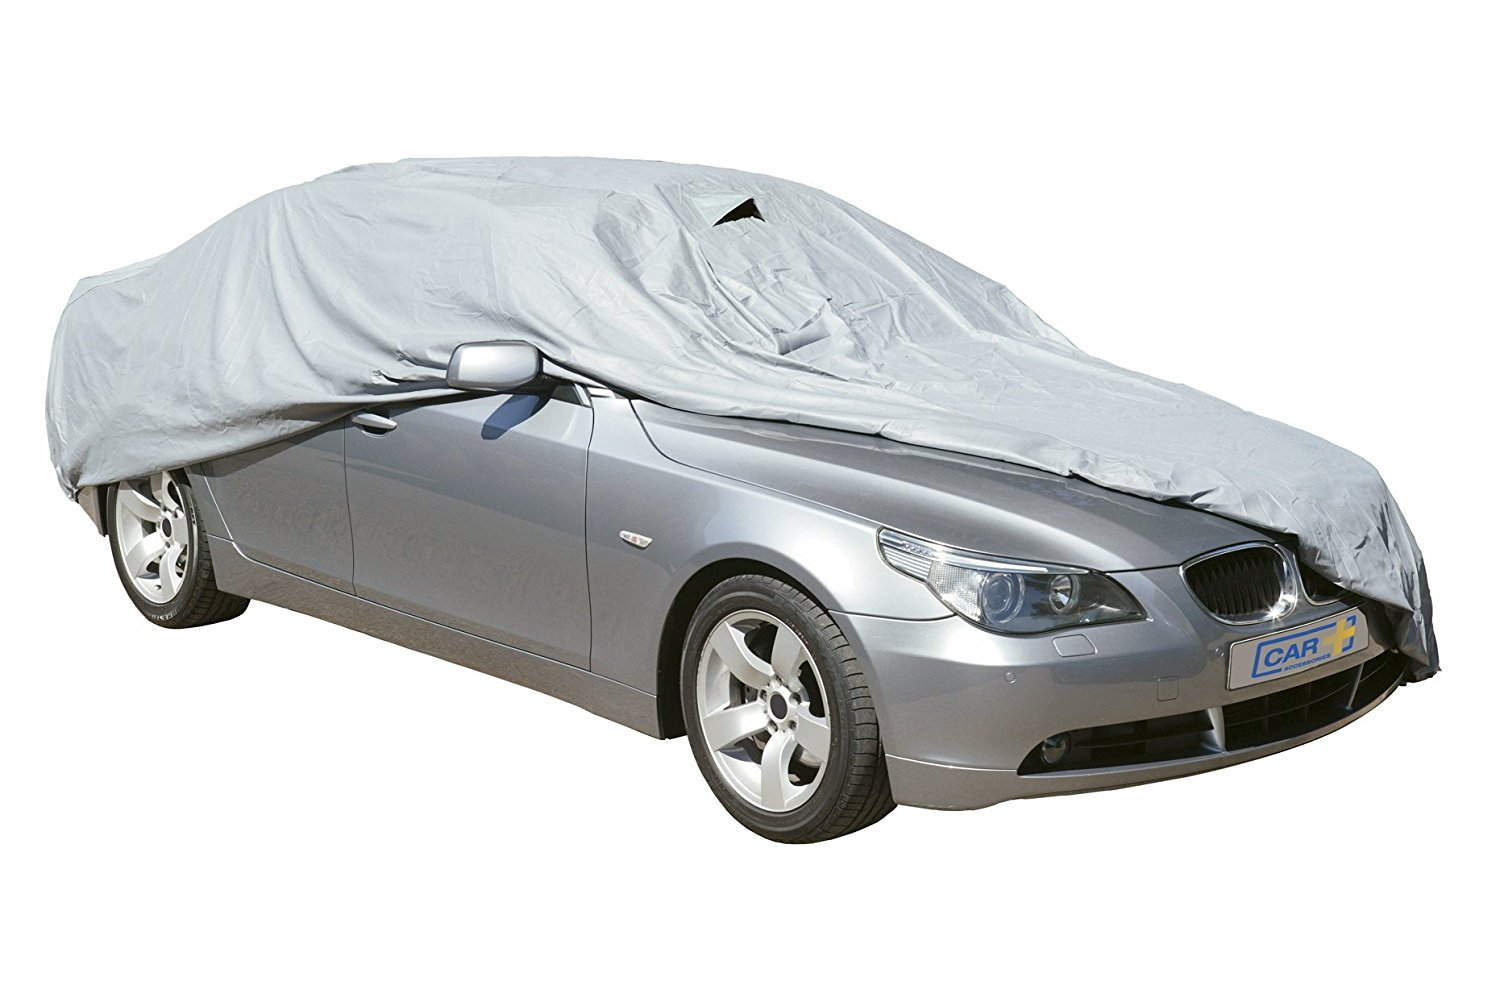 93-02 Waterproof /& Breathable Full Outdoor Protection Car Cover to fit Toyota Supra Mk4 Sumex Cover